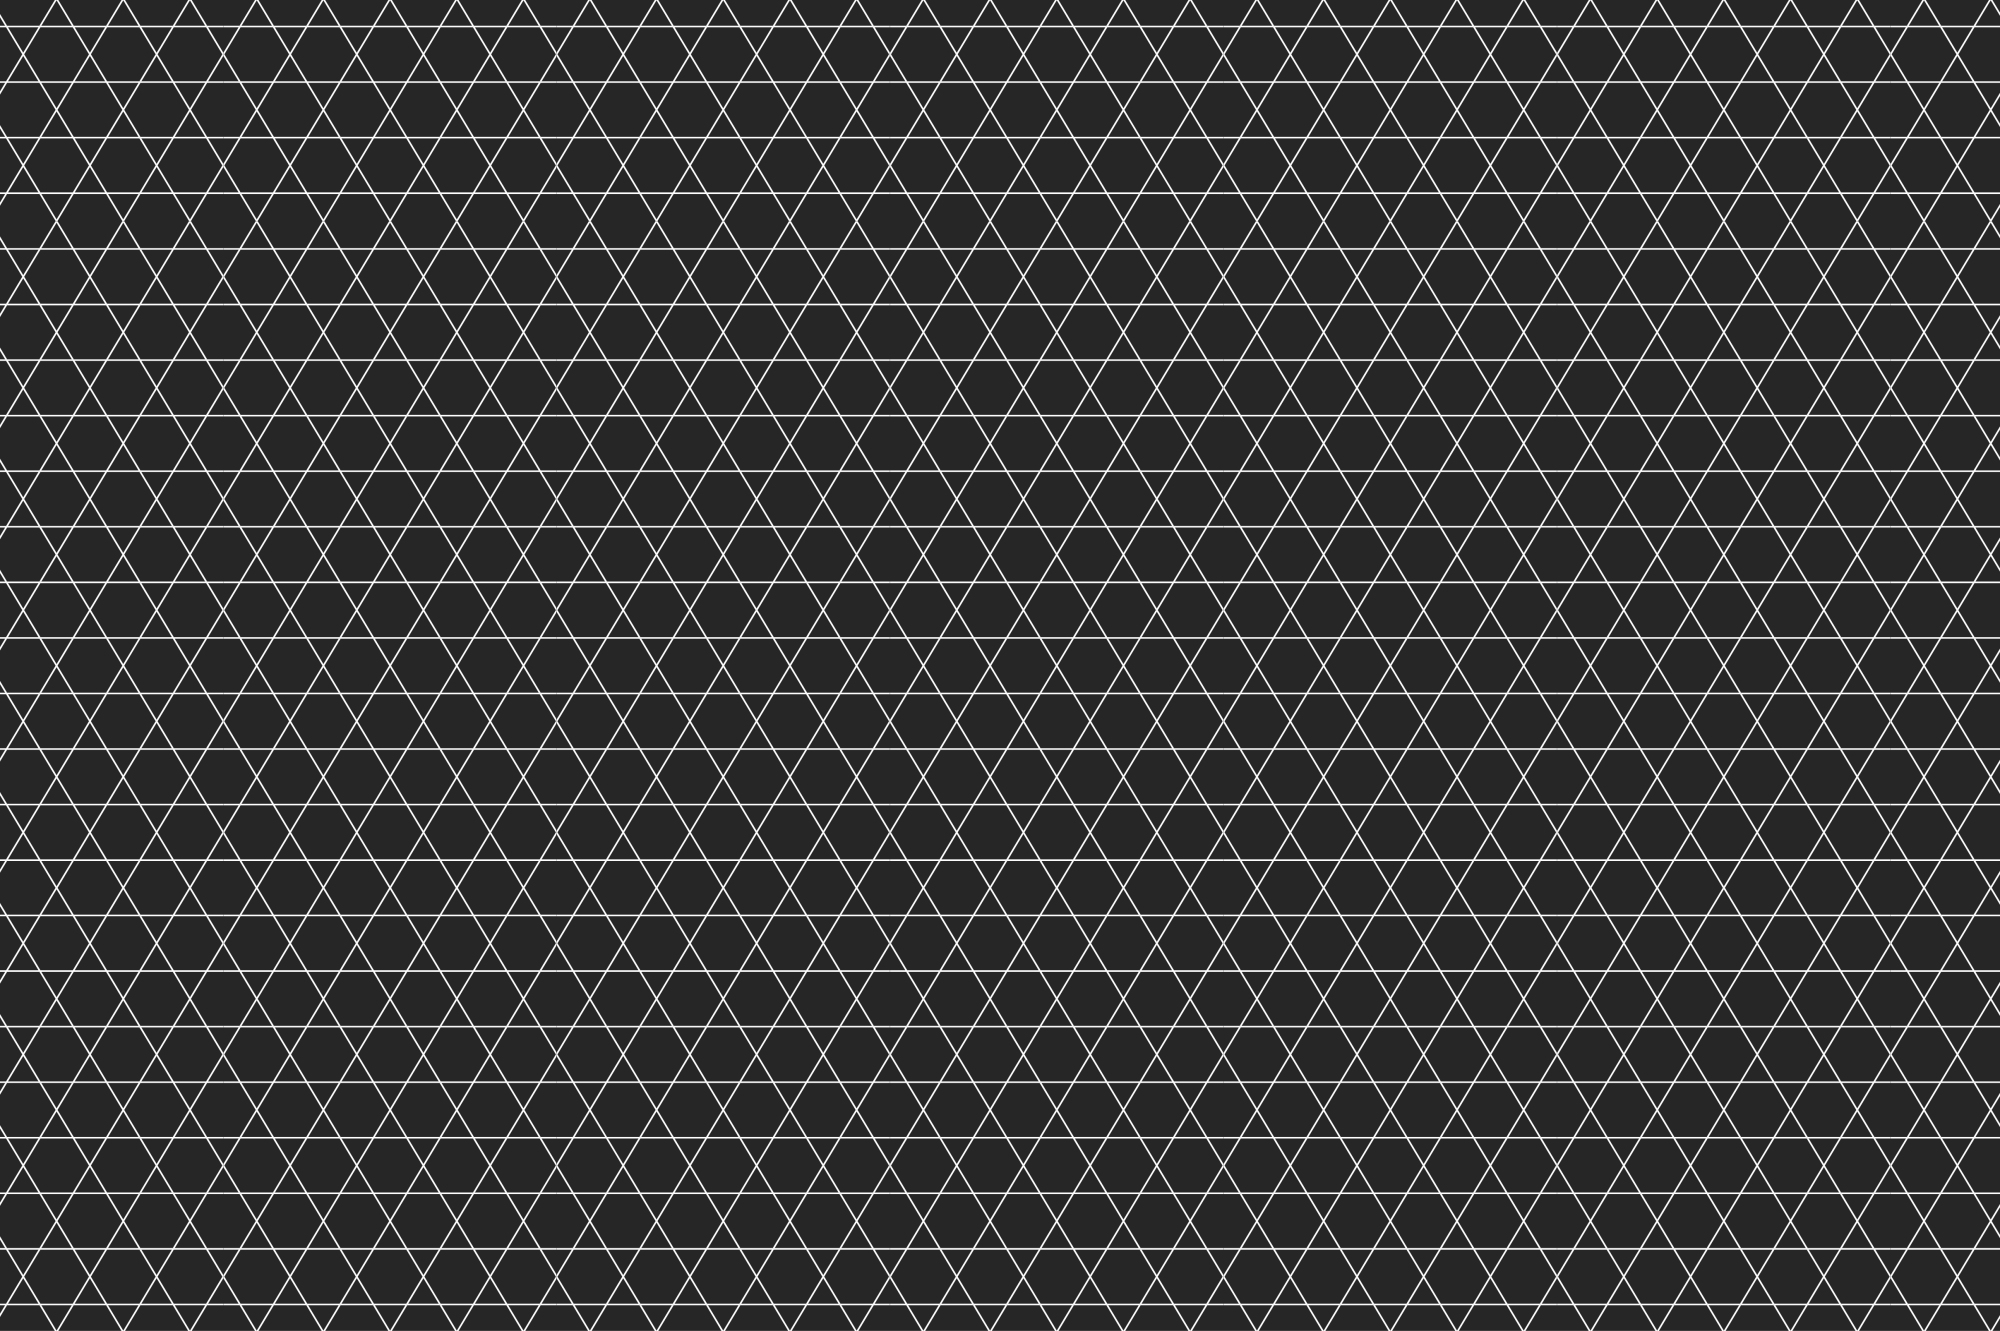 Ornamental seamless patterns. example image 7